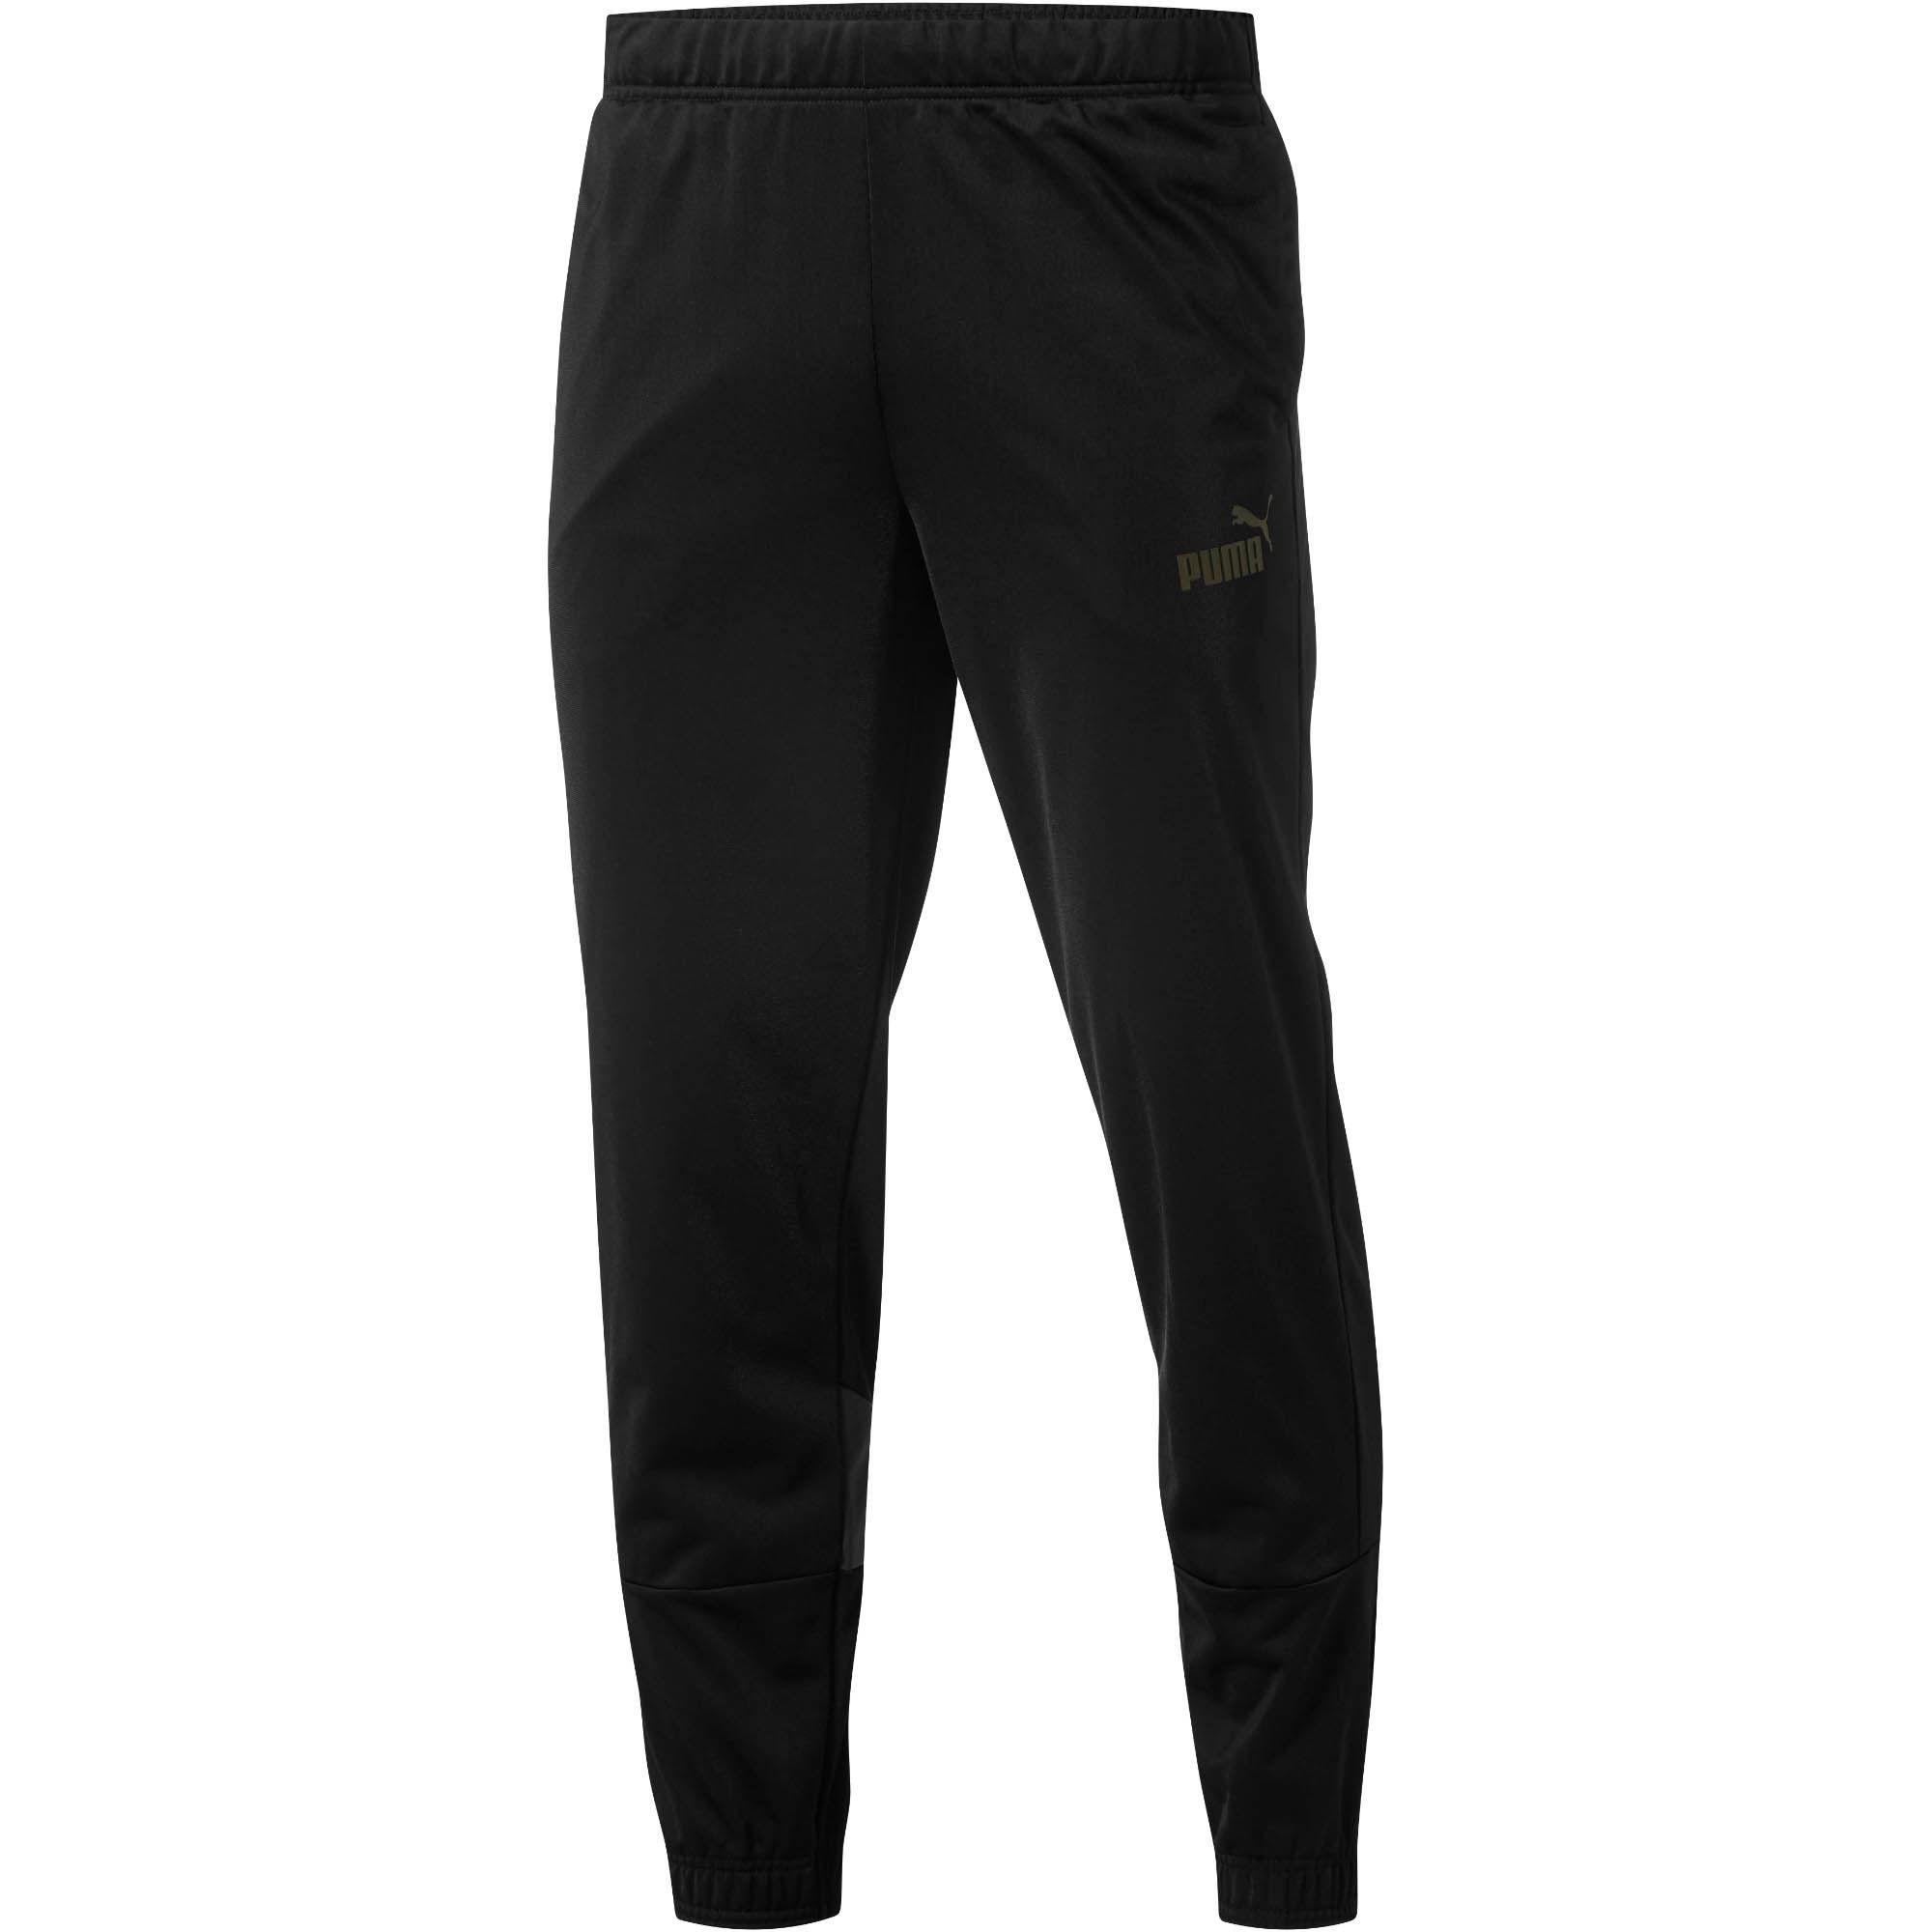 PUMA ICONIC TRICOT TRACK PANTS MENS BLACK WHITE ATHLETIC PANT